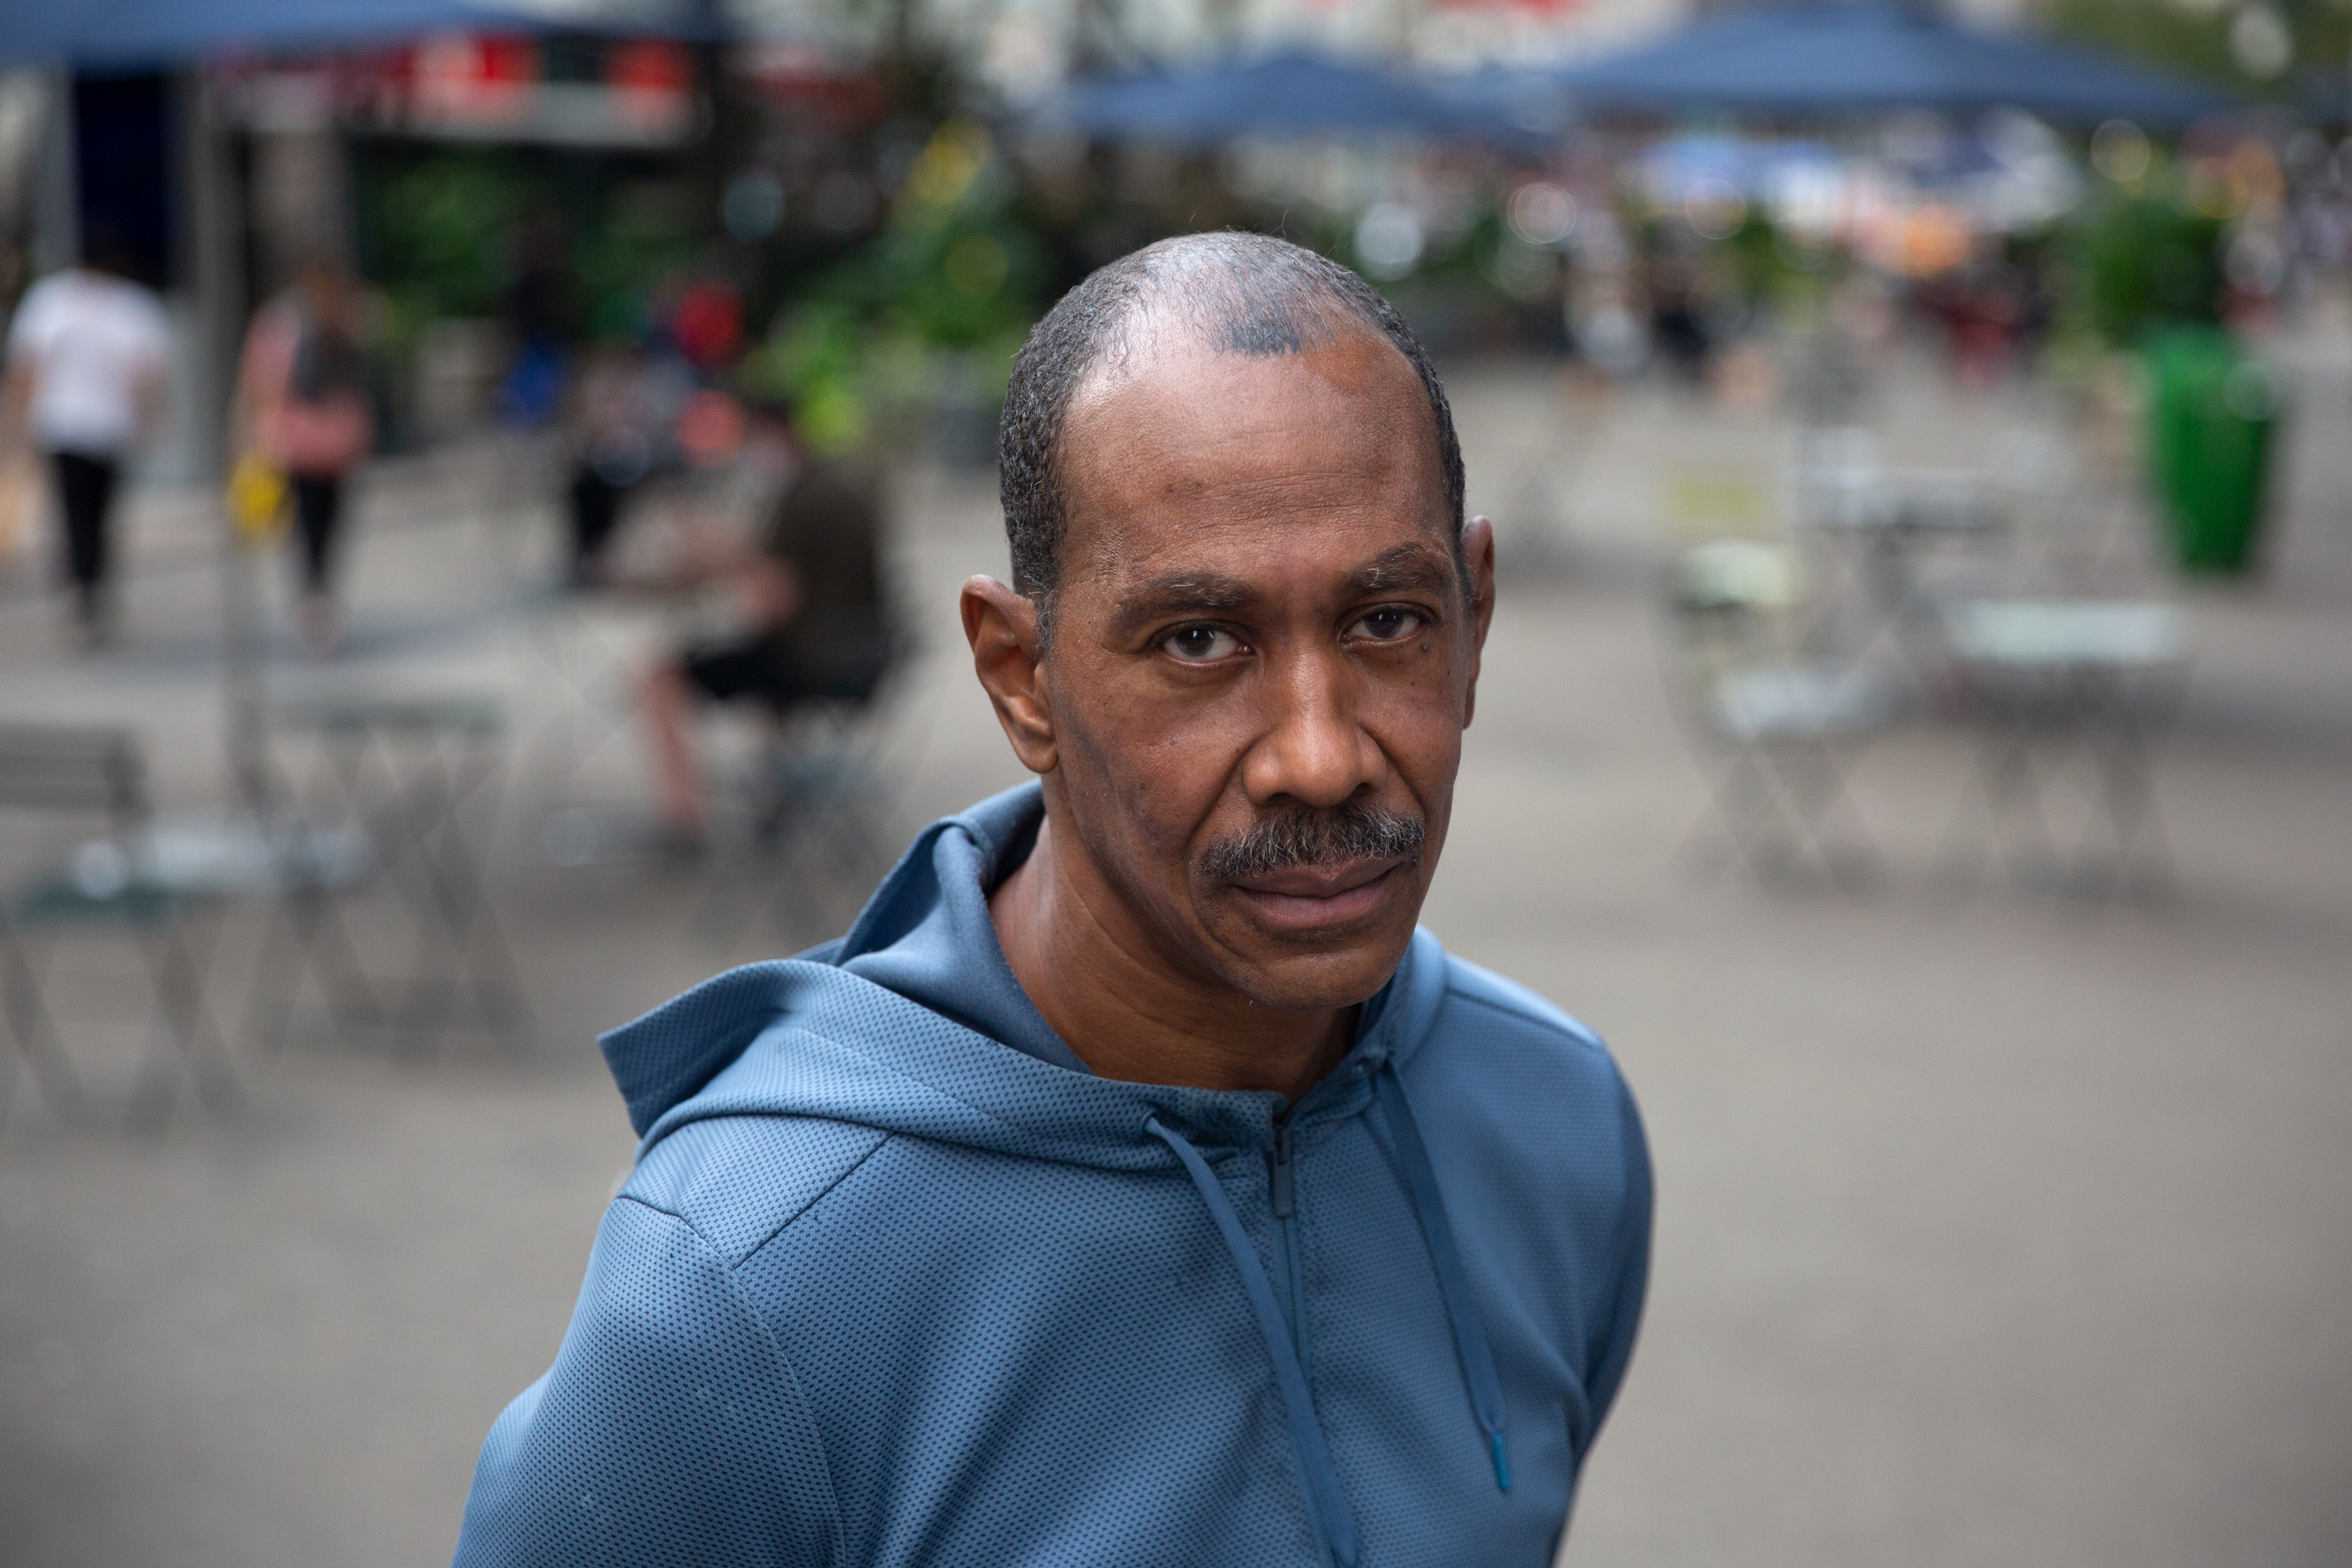 Charles Barry has been arrested more than 160 times for hustling tourists around Times Square, Sept. 16, 2020.